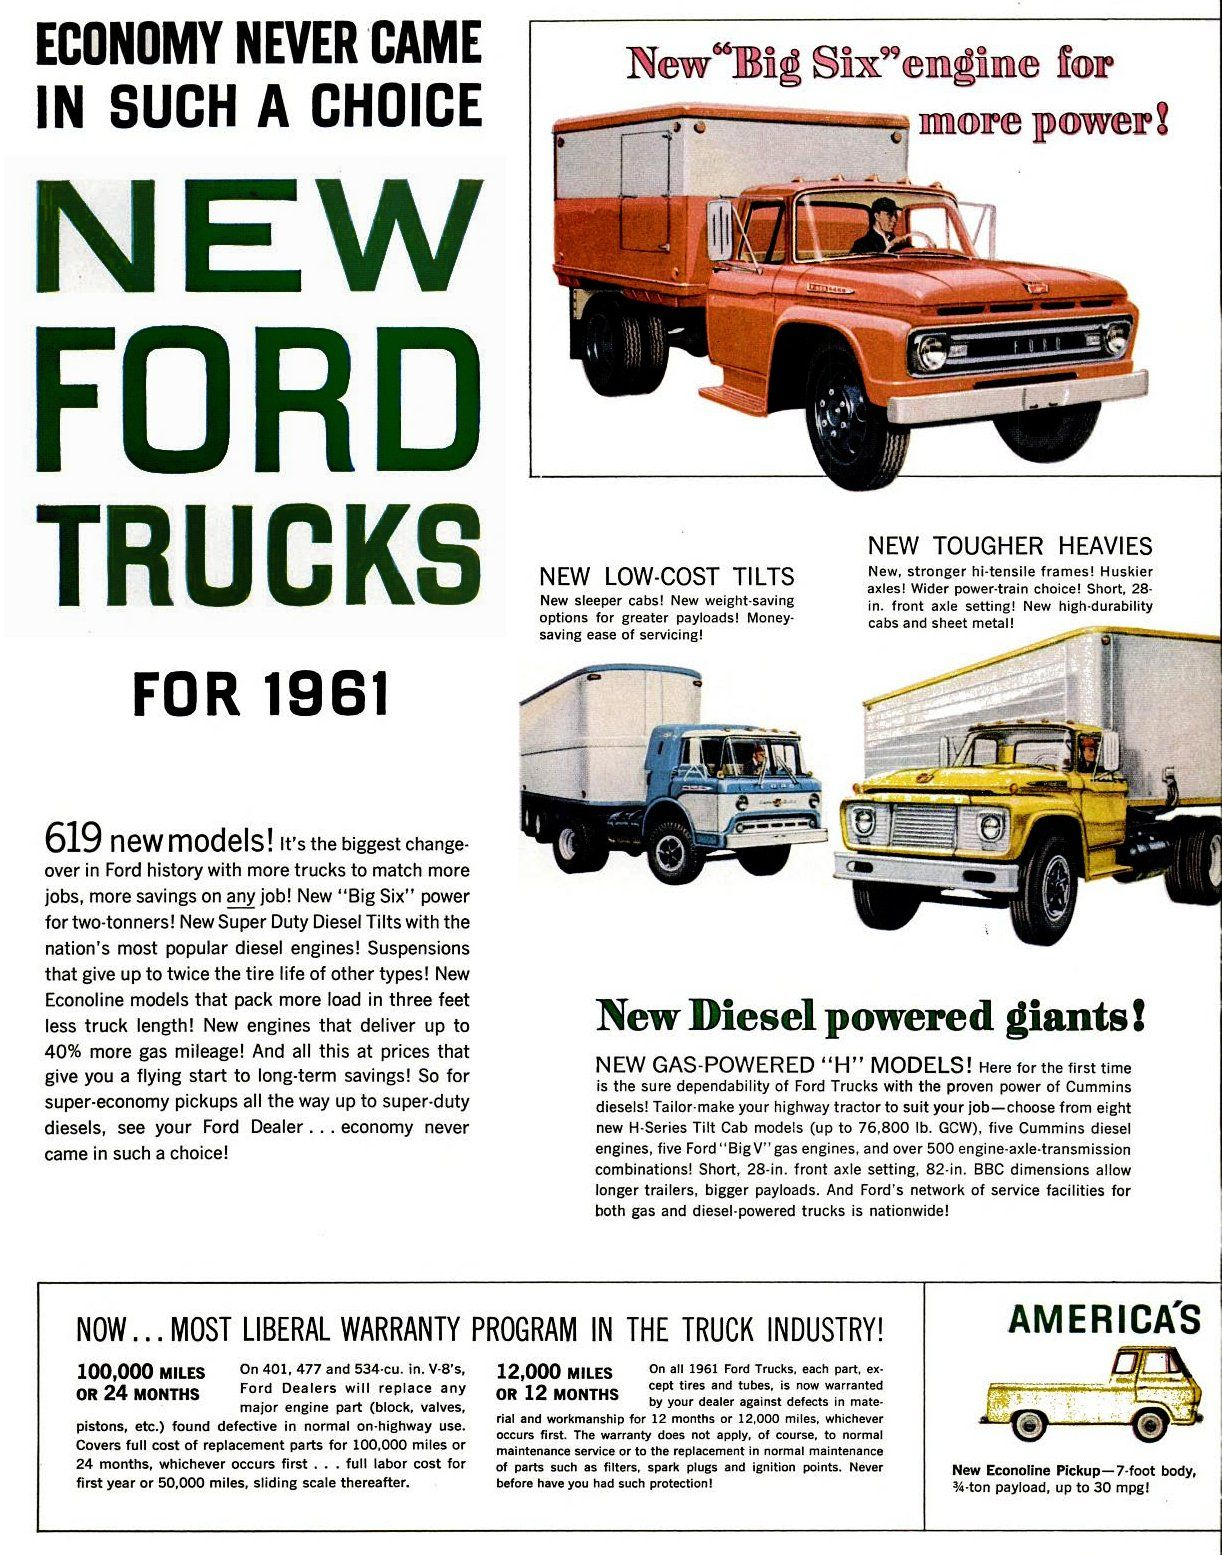 The New Heavy Duty 1961 Ford Trucks Ford Trucks New Trucks